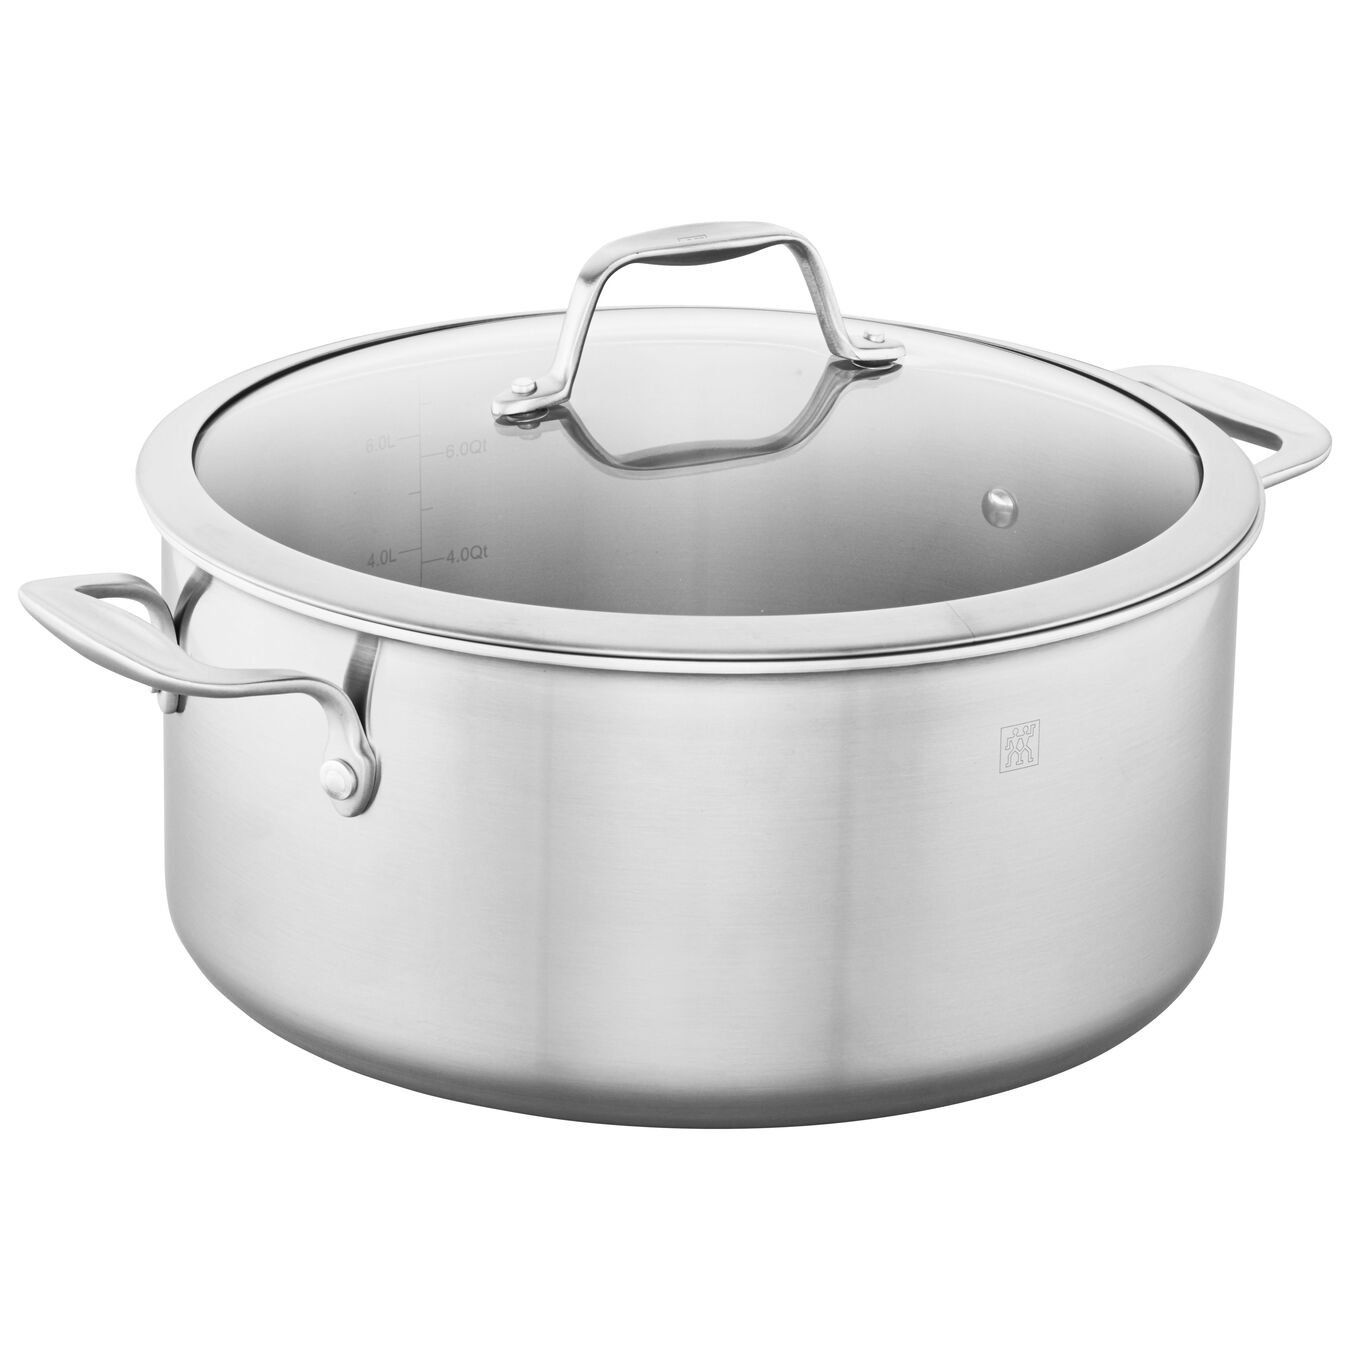 18/10 Stainless Steel, 8 qt, 18/10 Stainless Steel, Stock pot,,large 2